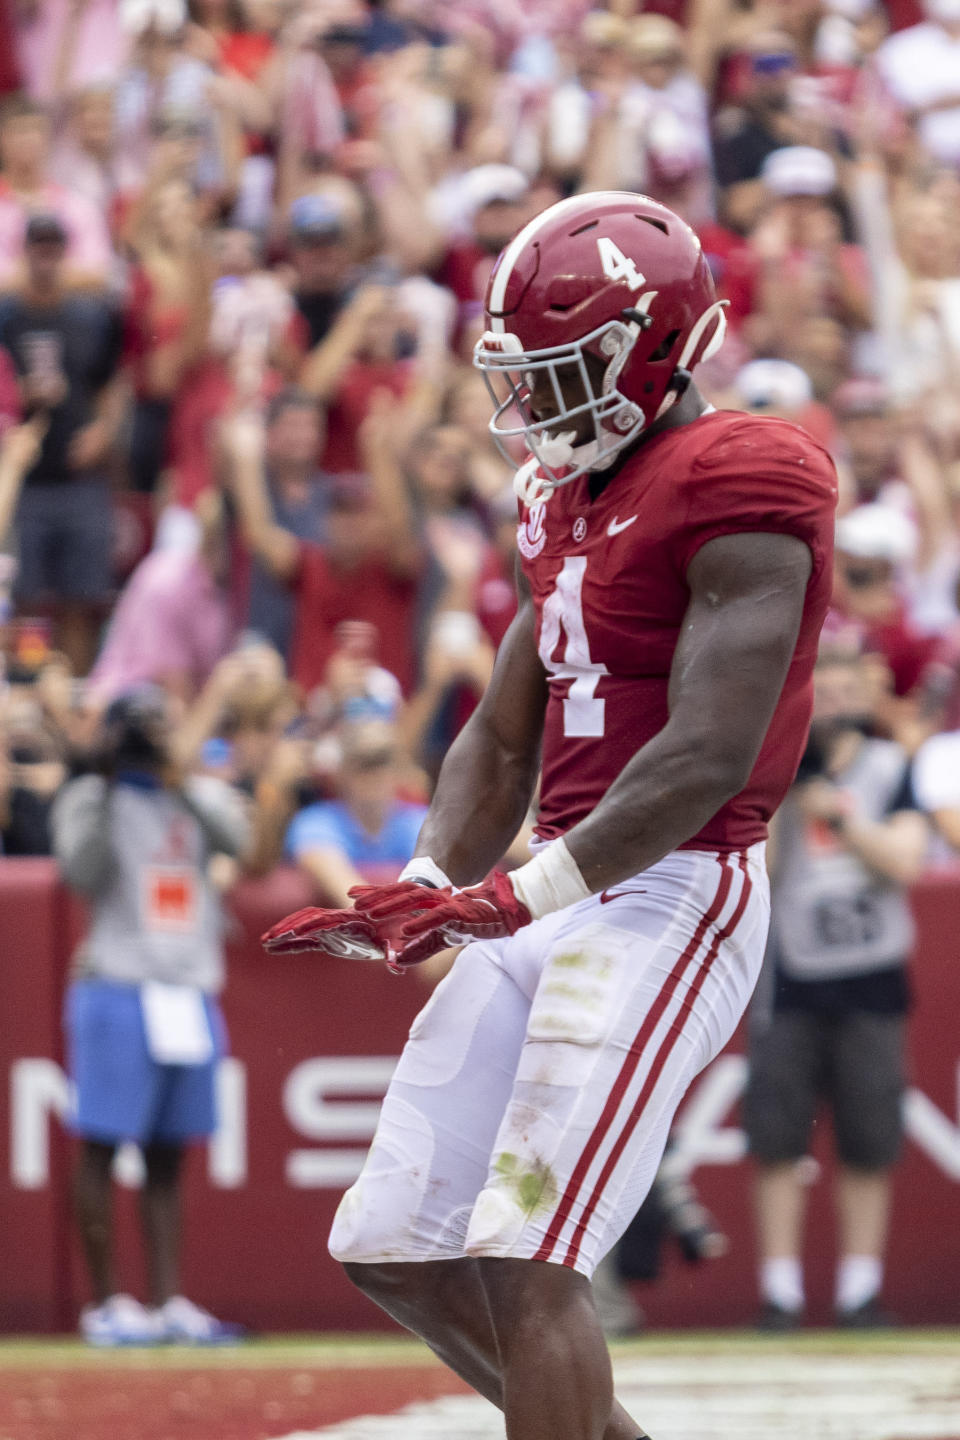 Alabama running back Brian Robinson Jr. (4) celebrates his touchdown run during the first half of an NCAA college football game against Mississippi, Saturday, Oct. 2, 2021, in Tuscaloosa, Ala. (AP Photo/Vasha Hunt)